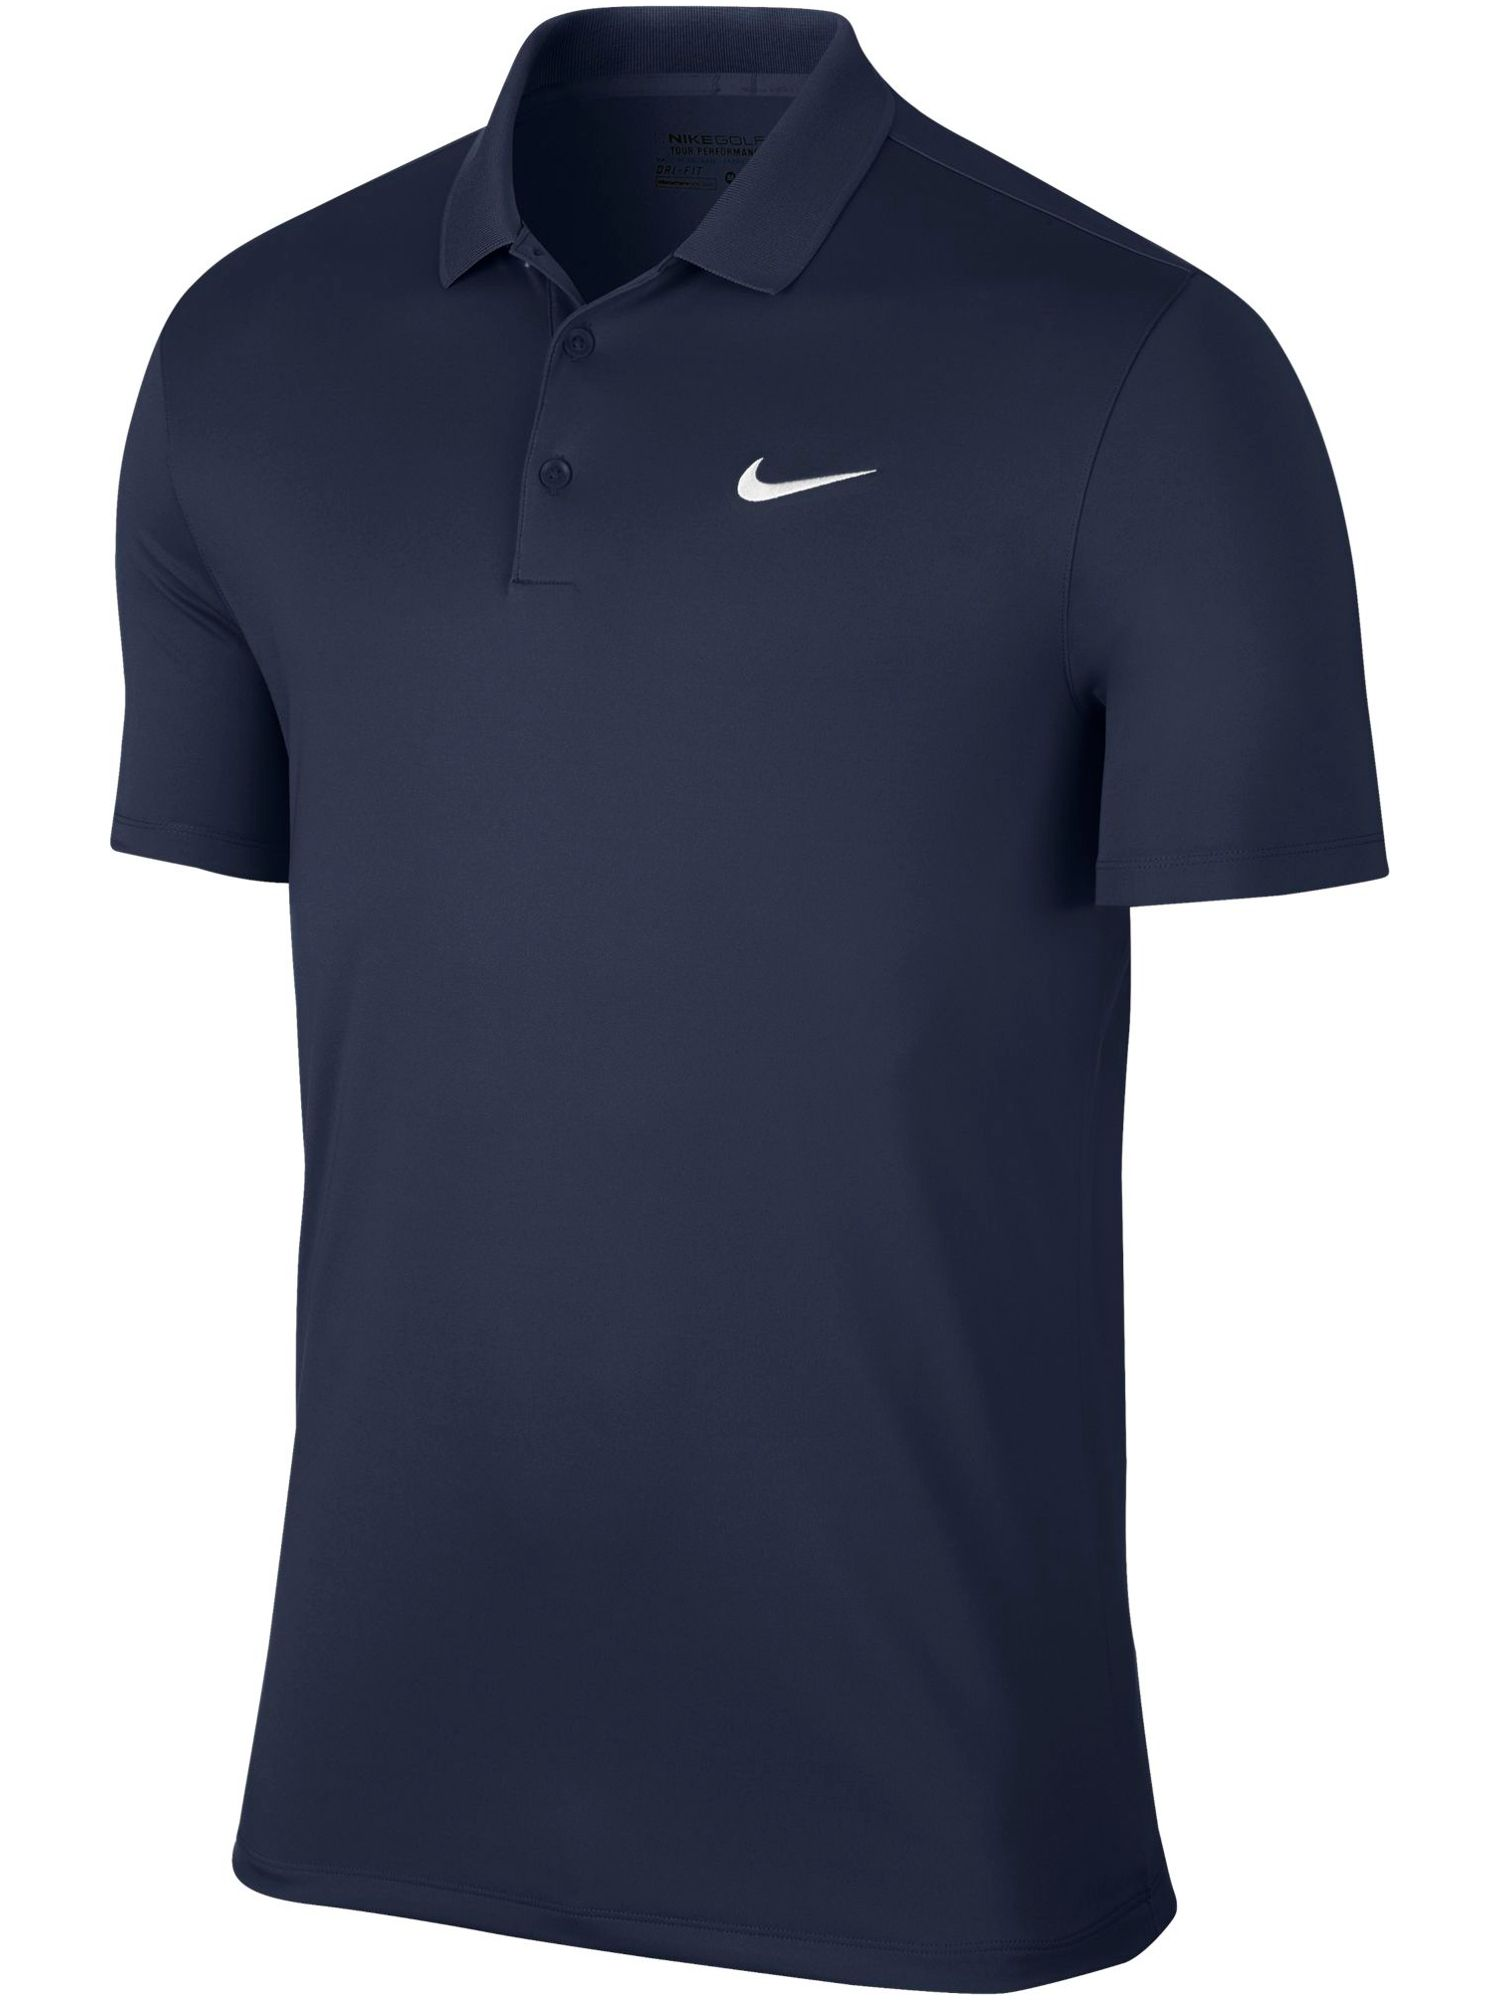 Men's Nike Golf Victory Solid Polo, Blue